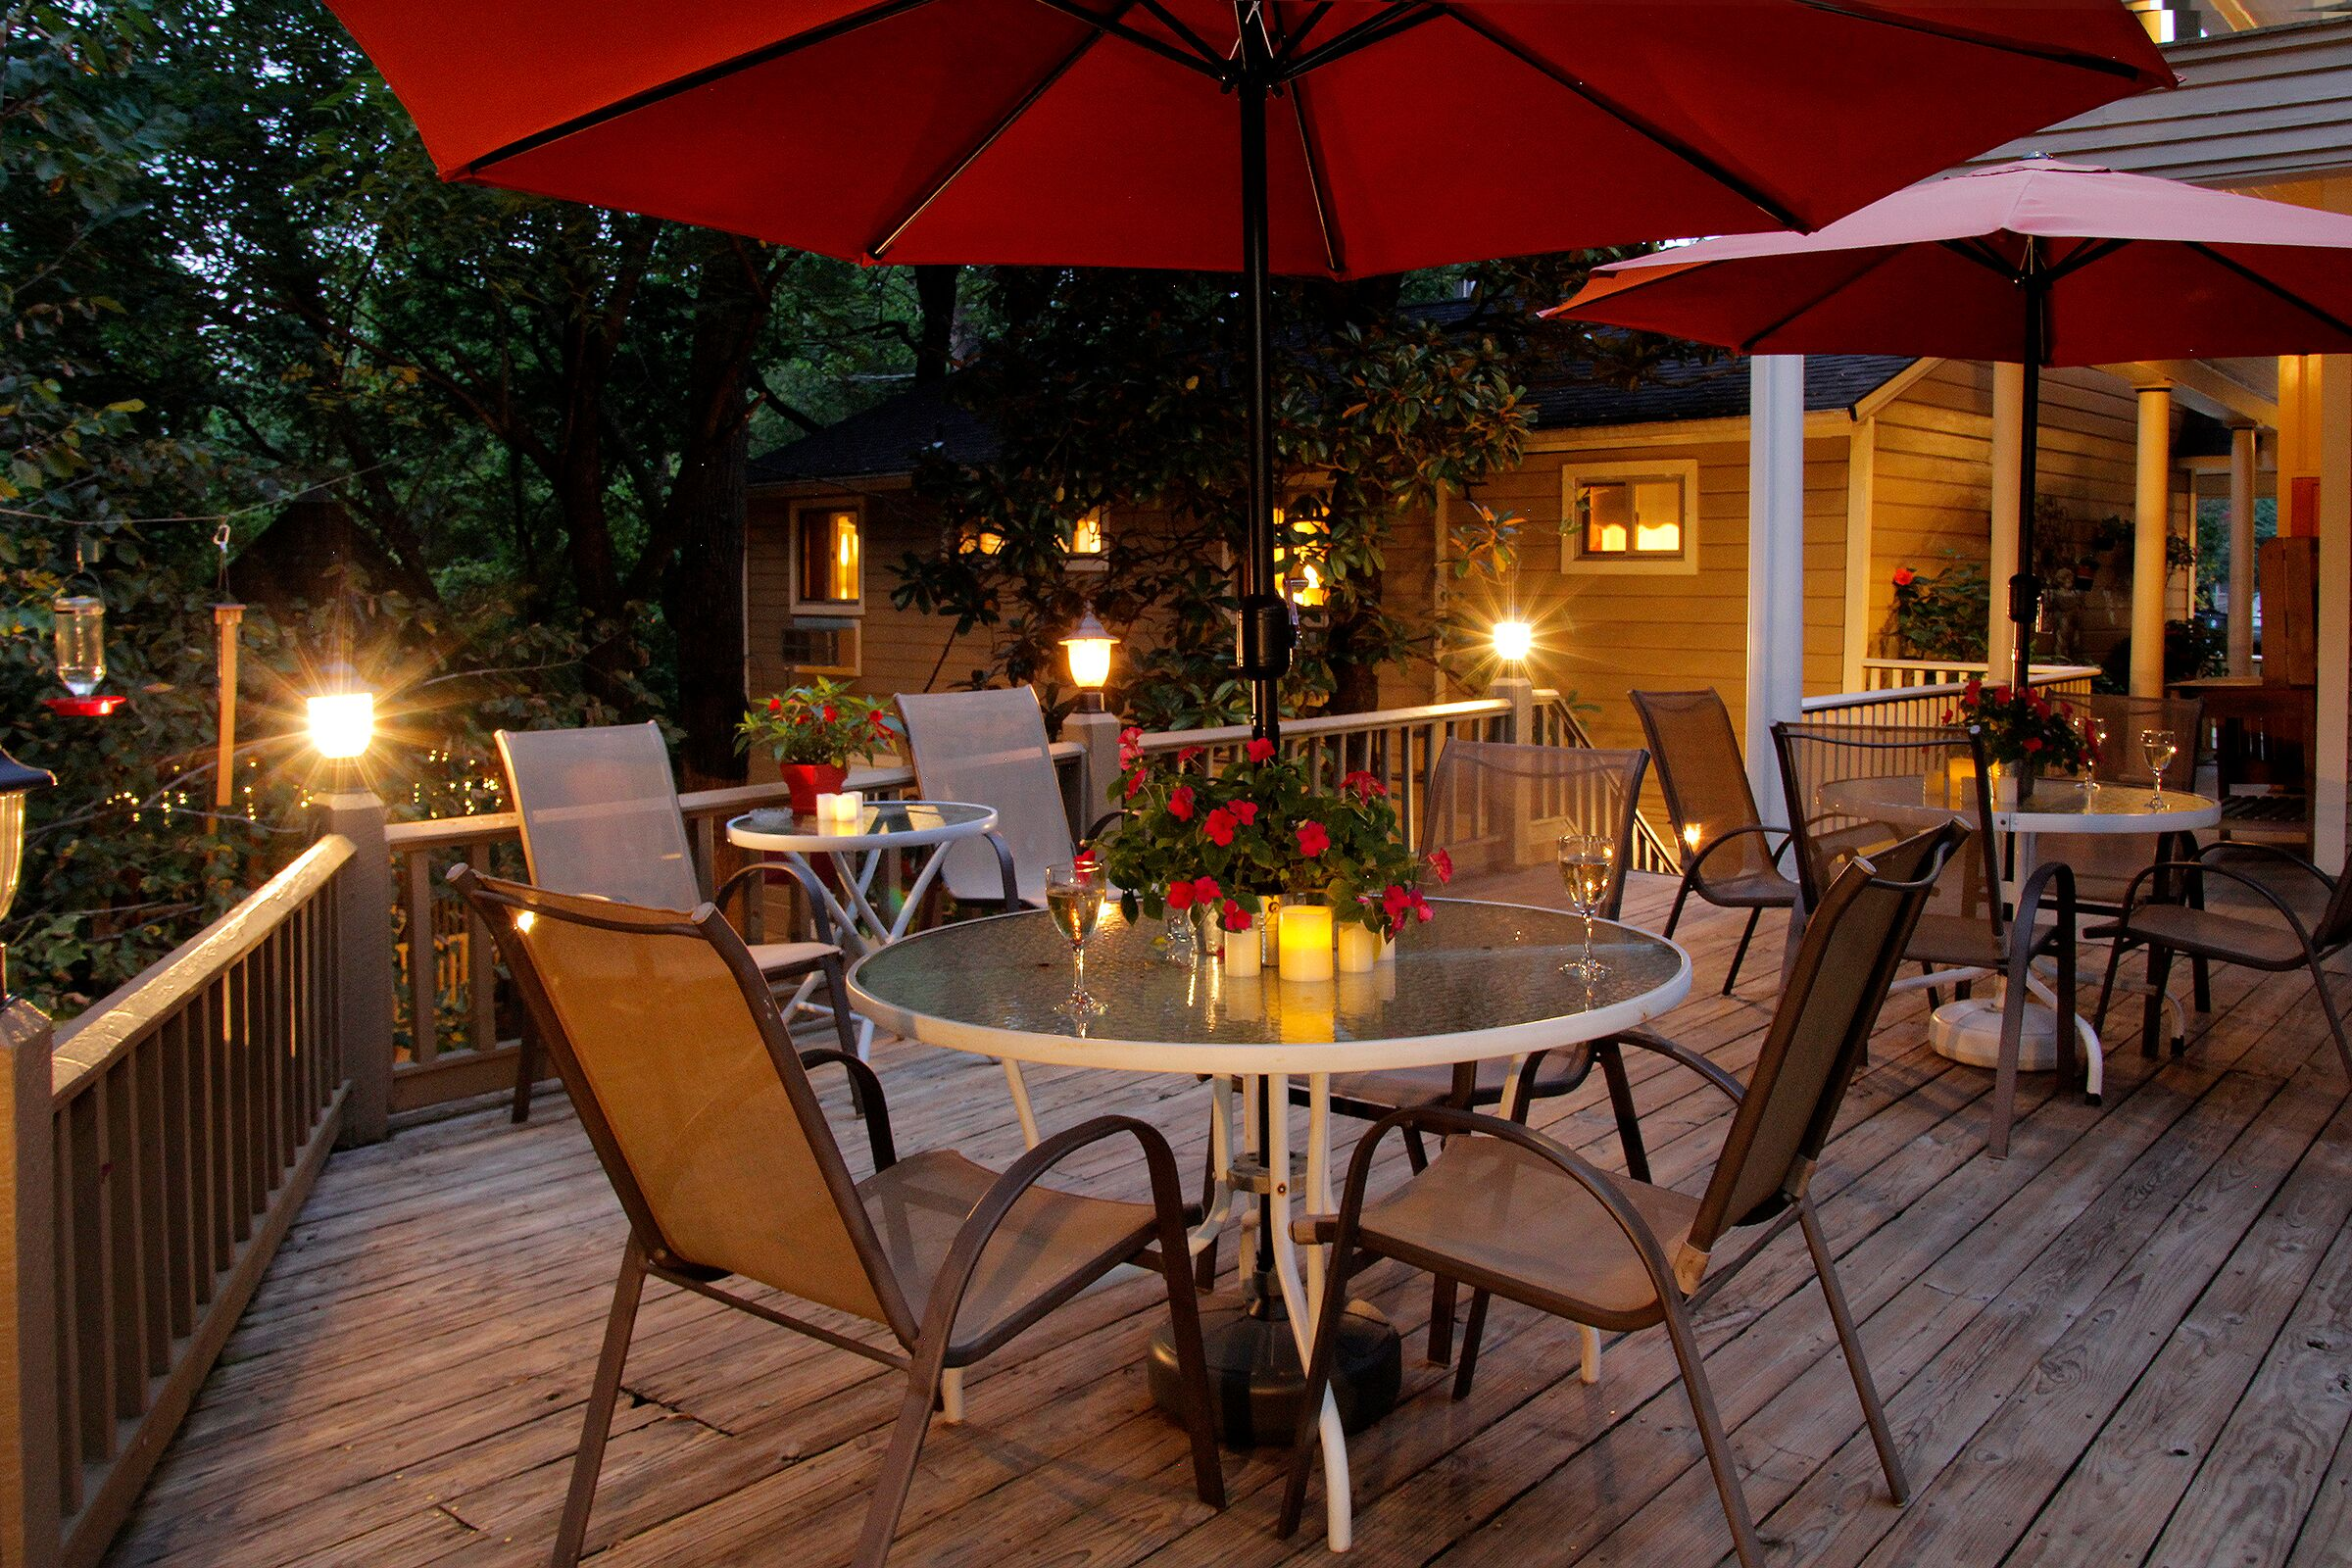 hsi-Night Patio - Cheri Rojek